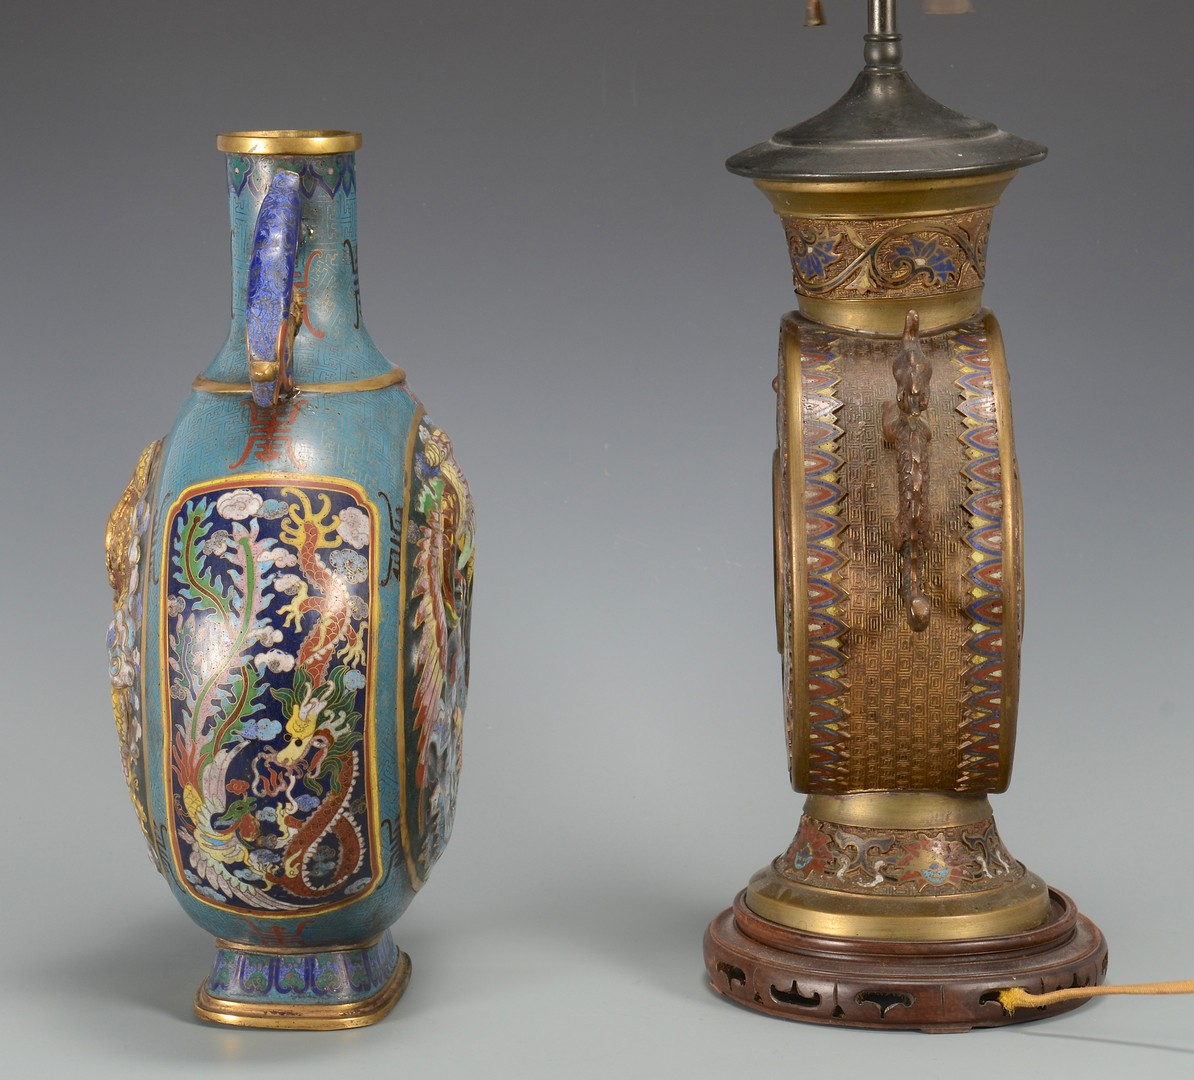 Lot 3594198: Cloisonne Vase & Lamp, Pilgrim Flask Form